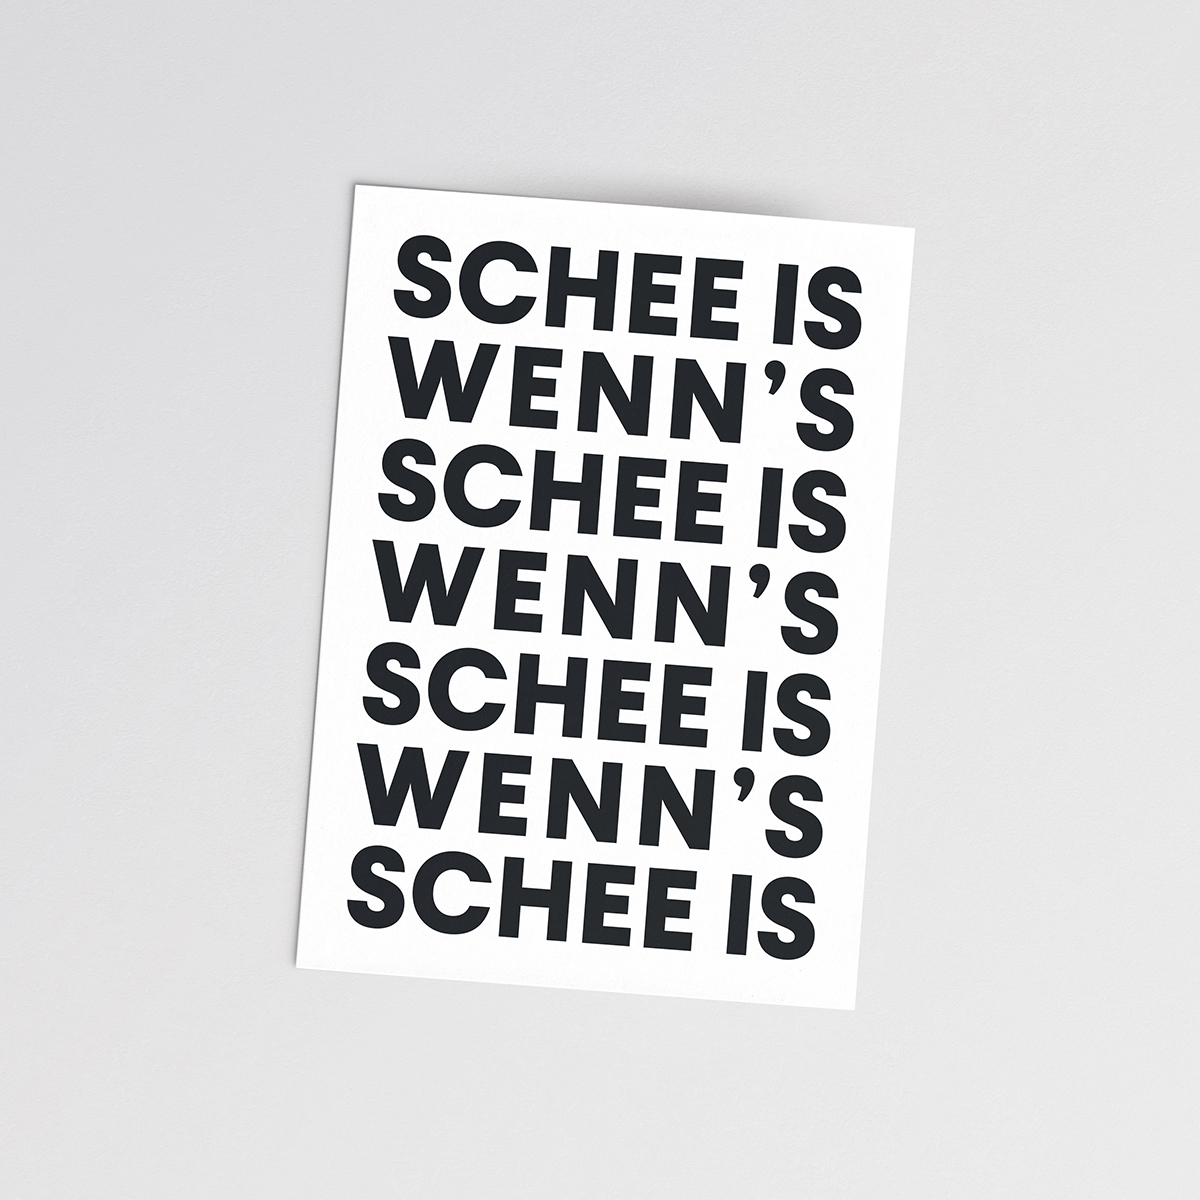 Postkarte 'Schee is, wenn's schee is'